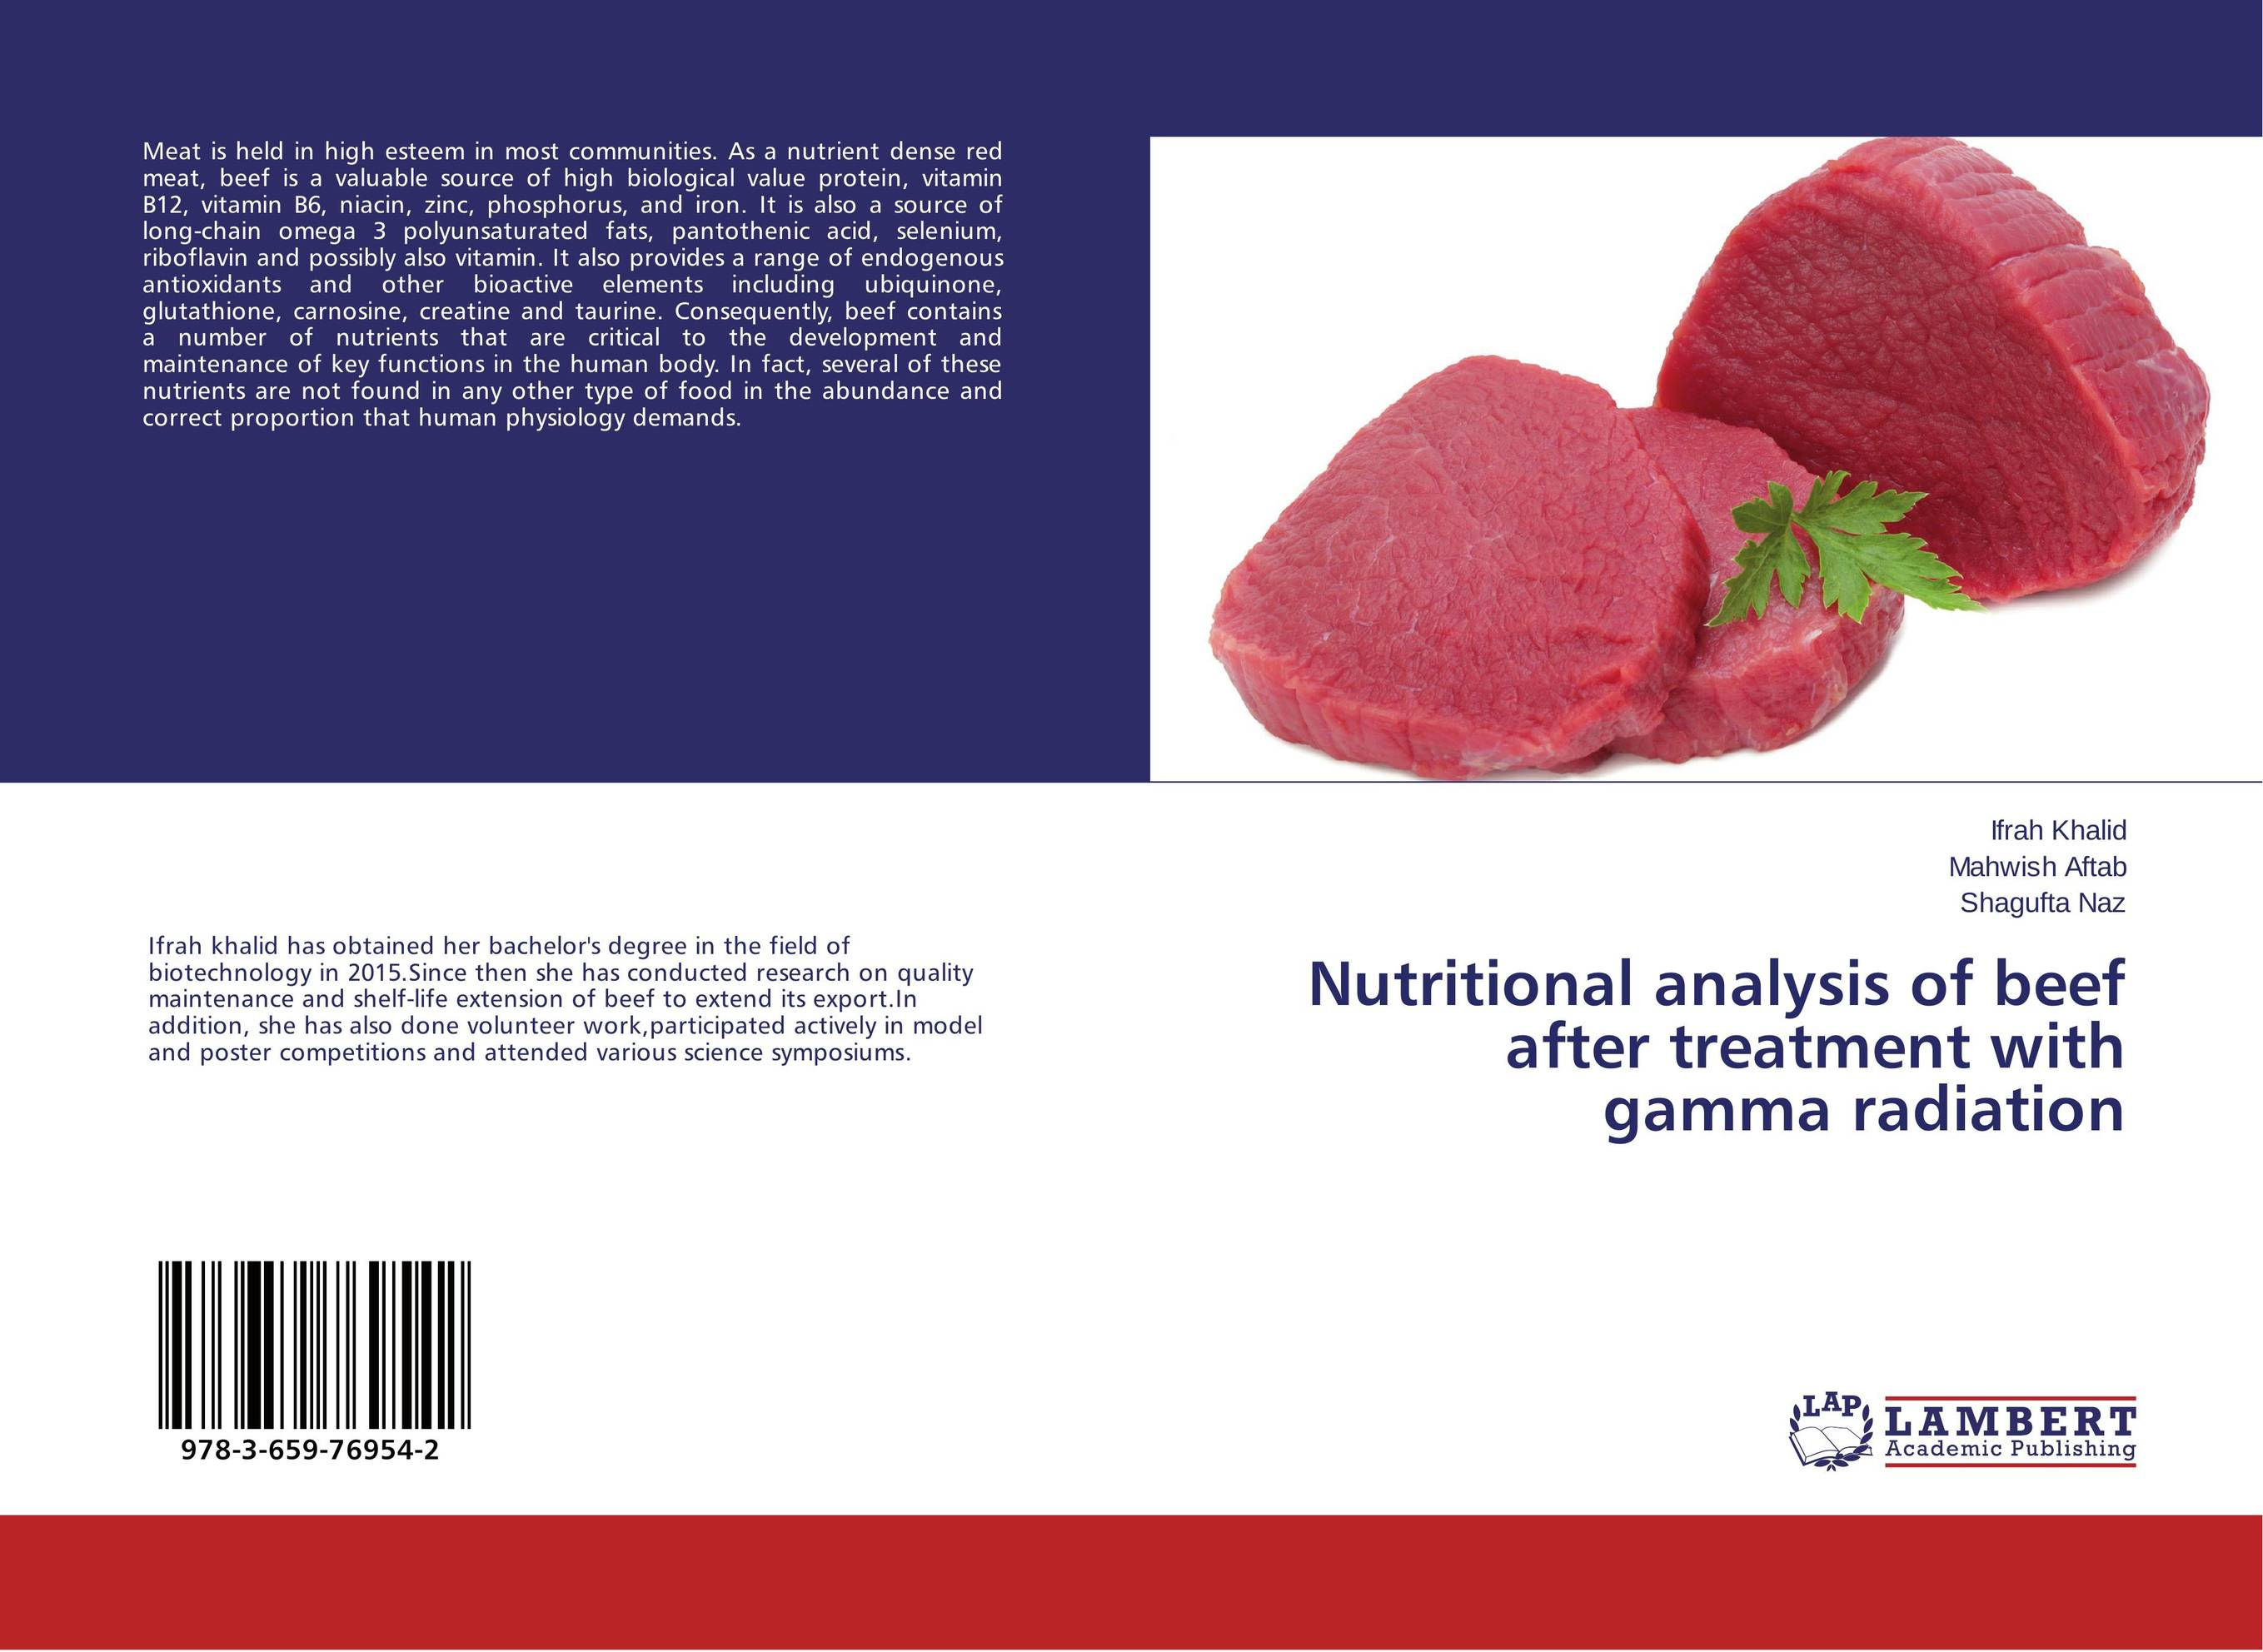 Nutritional analysis of beef after treatment with gamma radiation 100g vitamin b2 riboflavin food grade usa imported